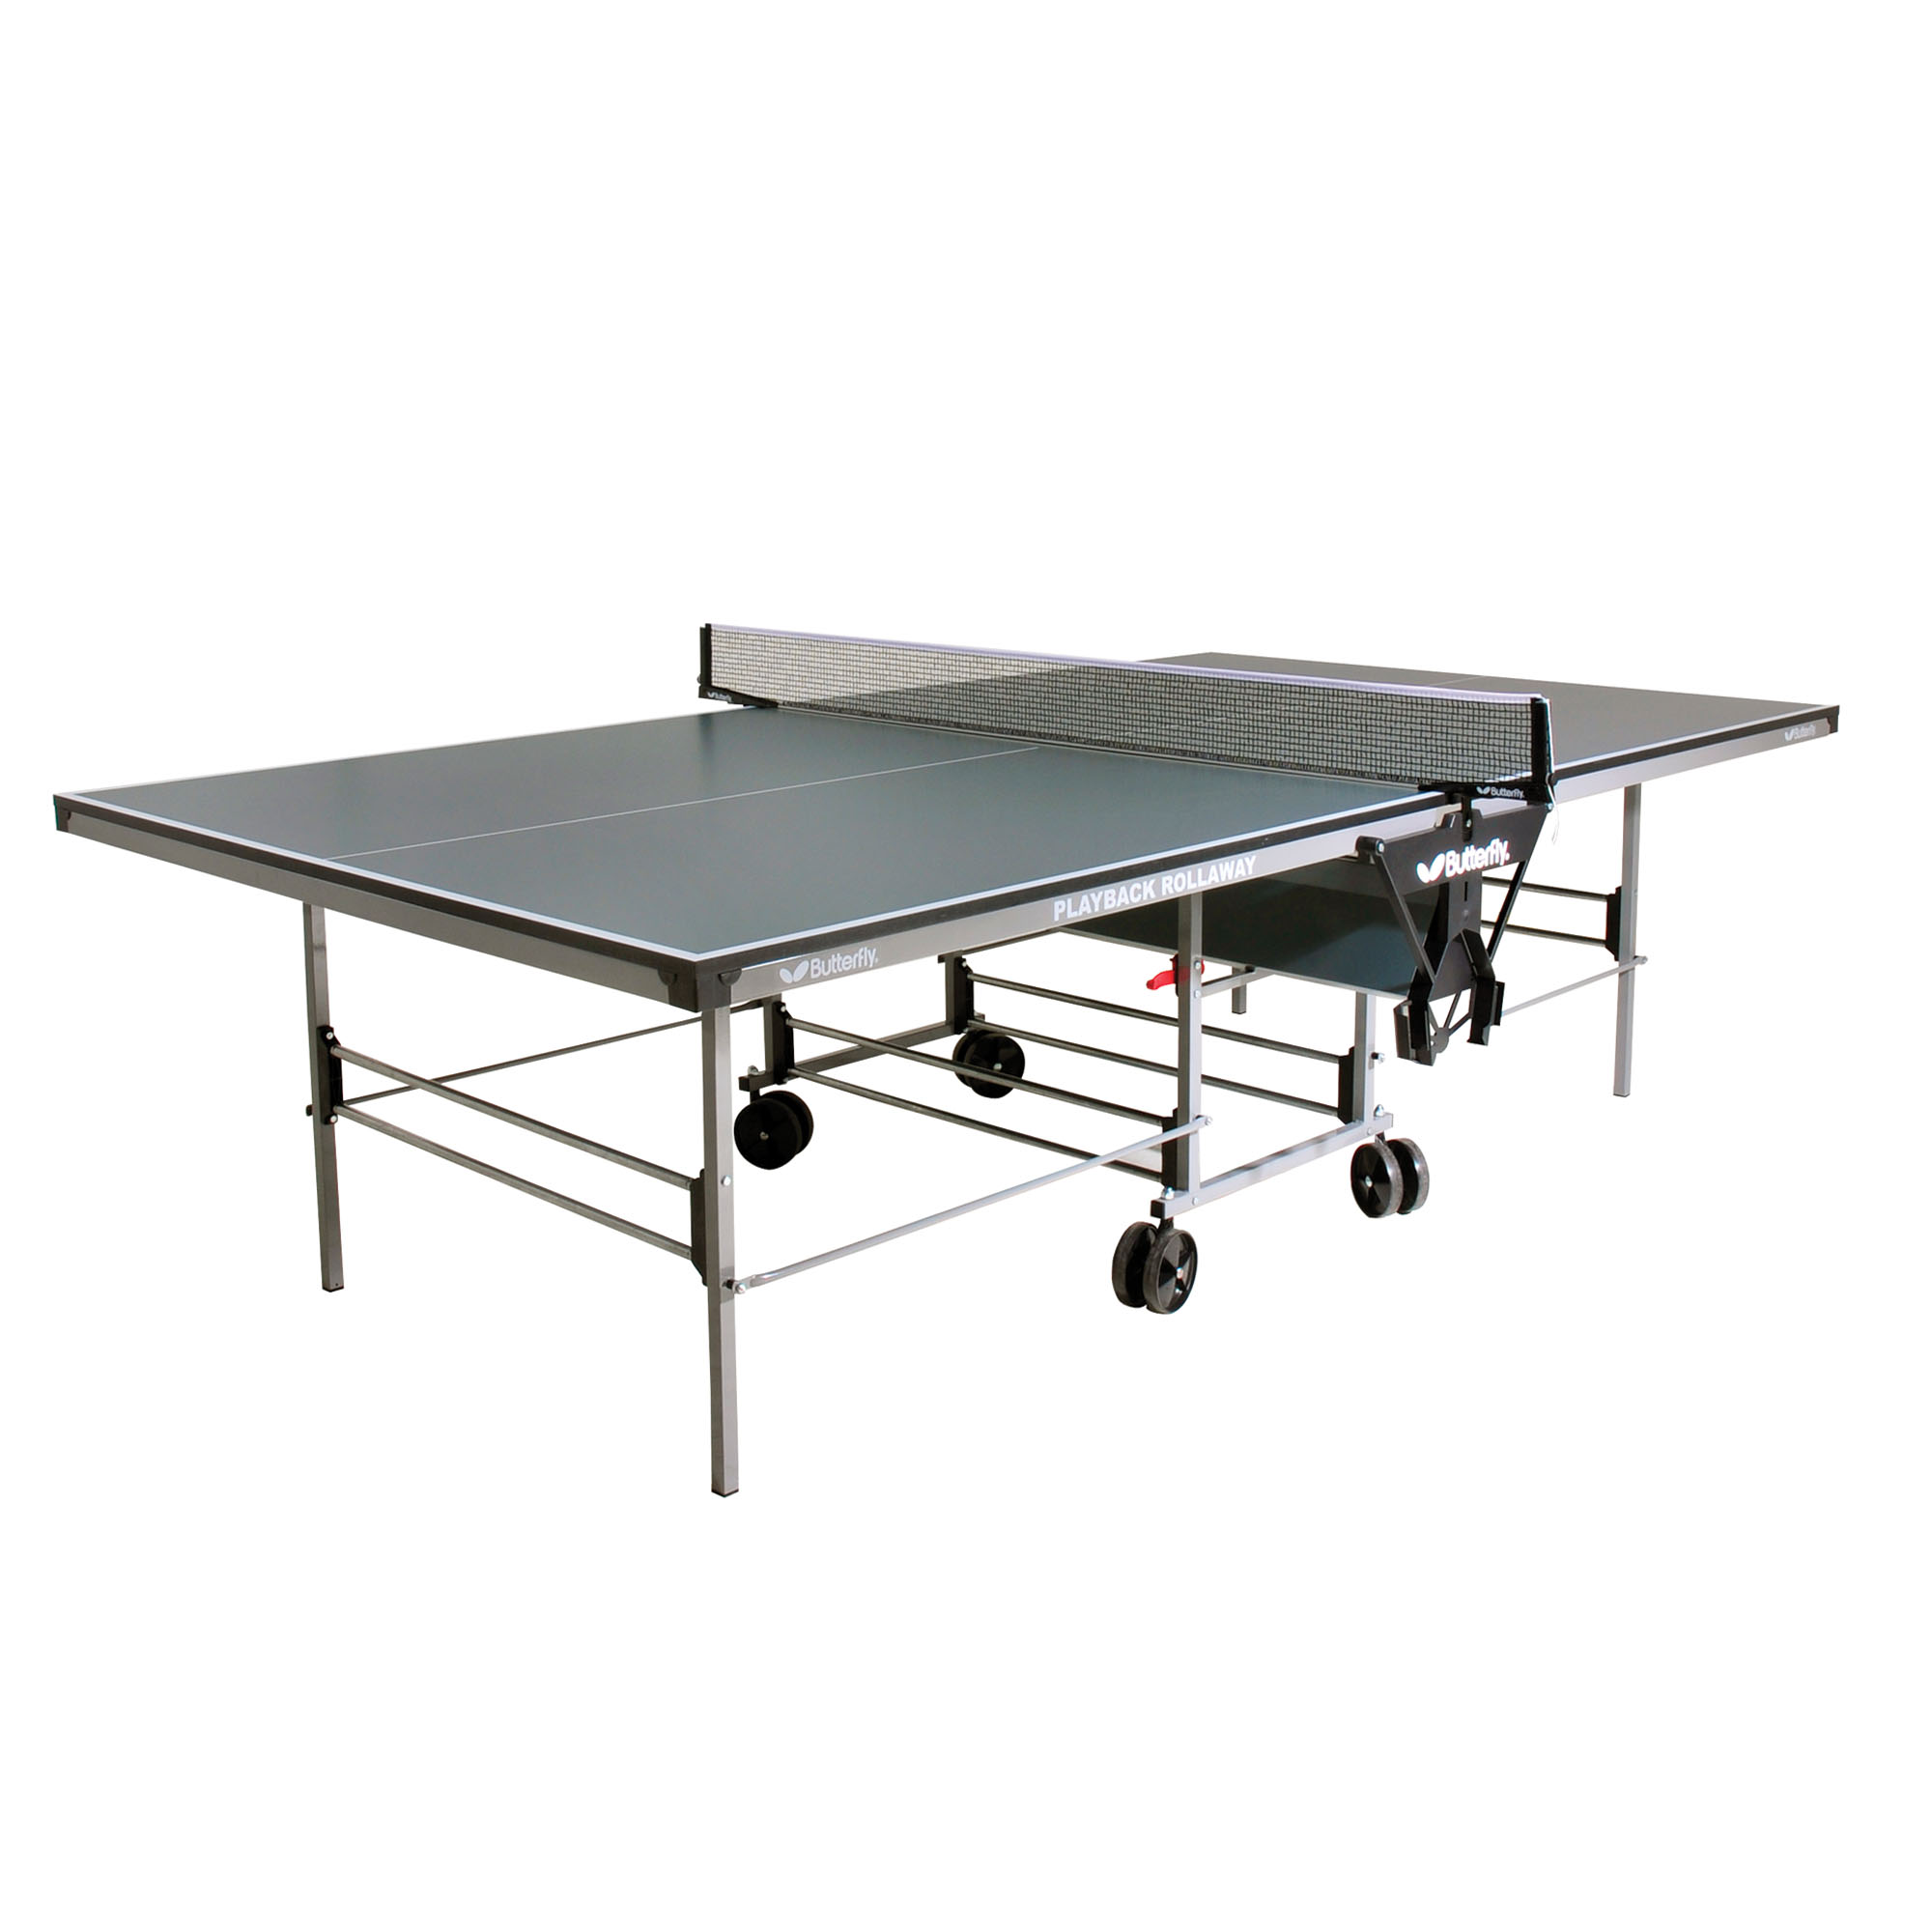 Butterfly Playback Rollaway Table Tennis Table  Green